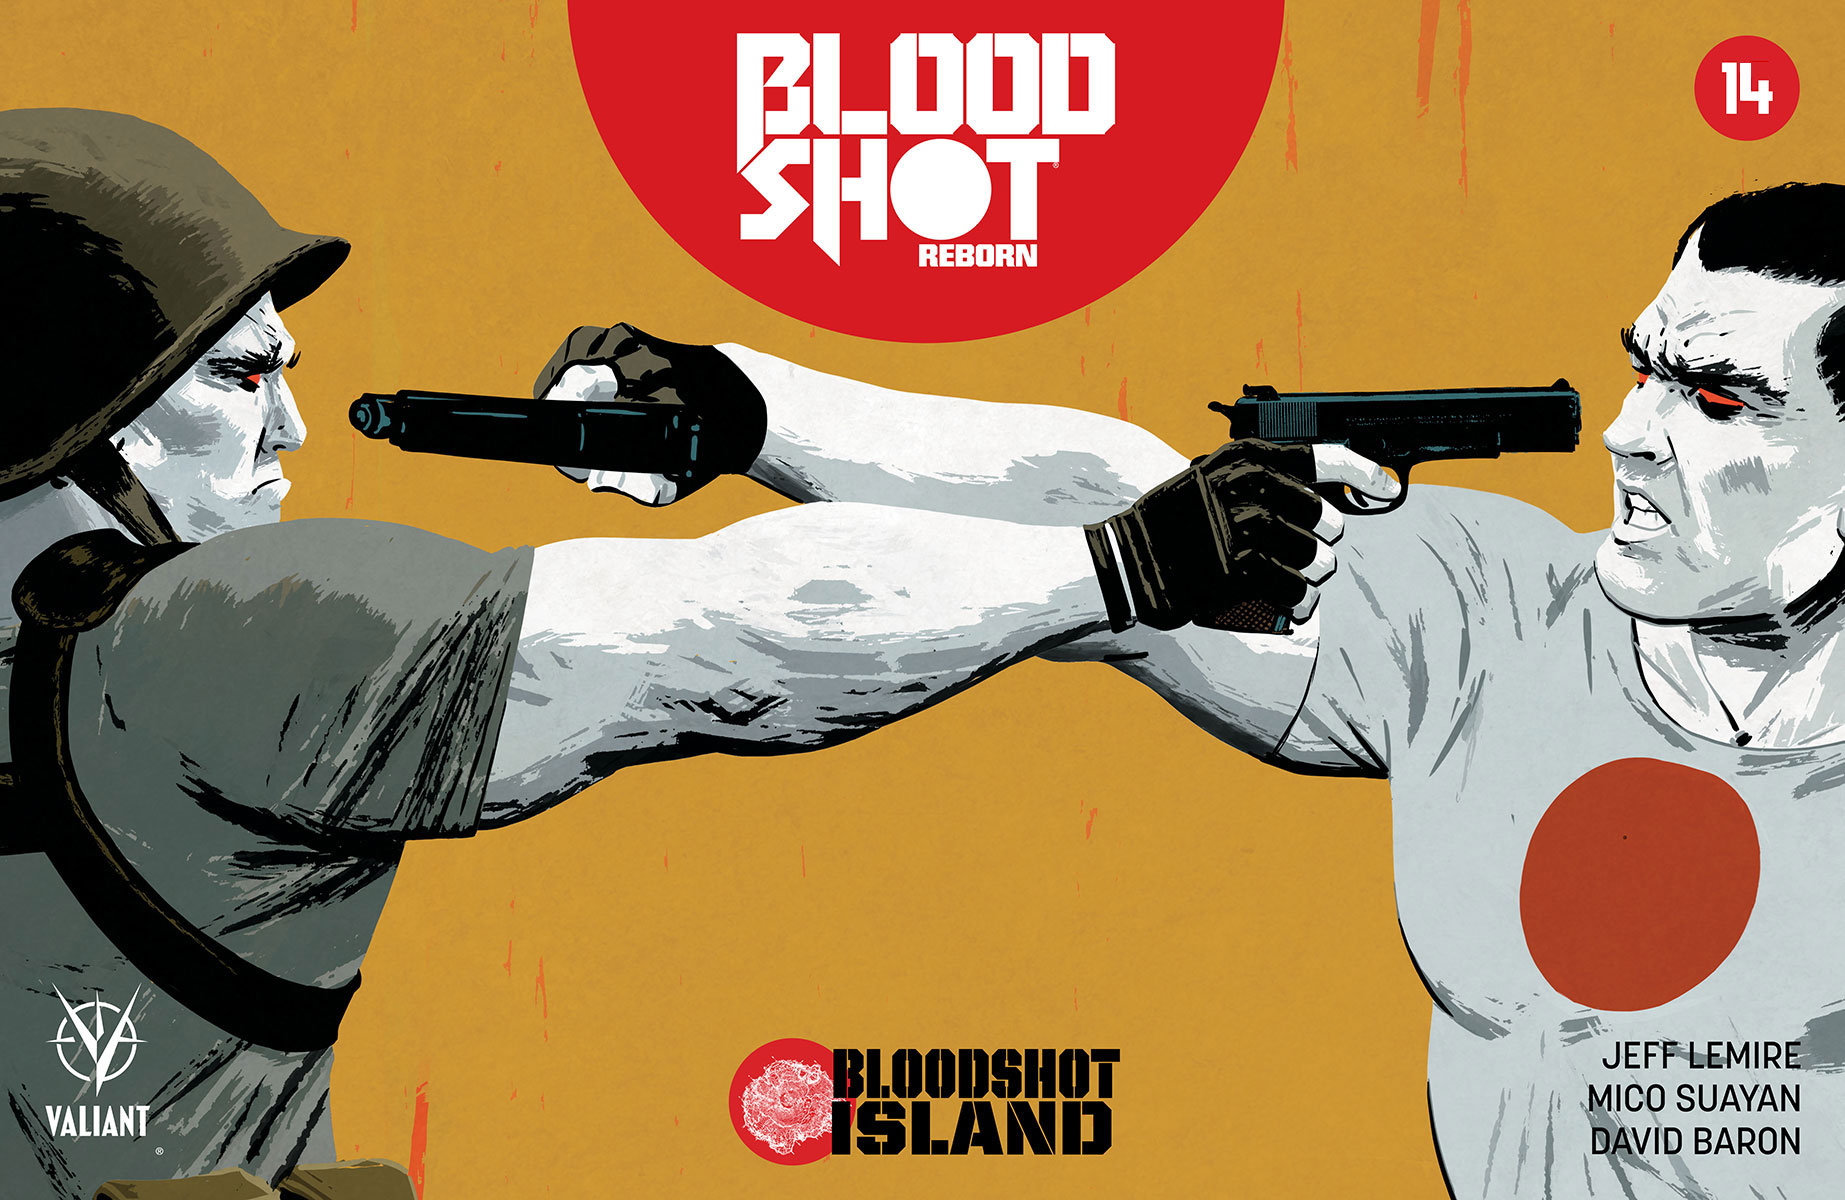 BLOODSHOT REBORN #14 – Cover A by Tomas Giorello